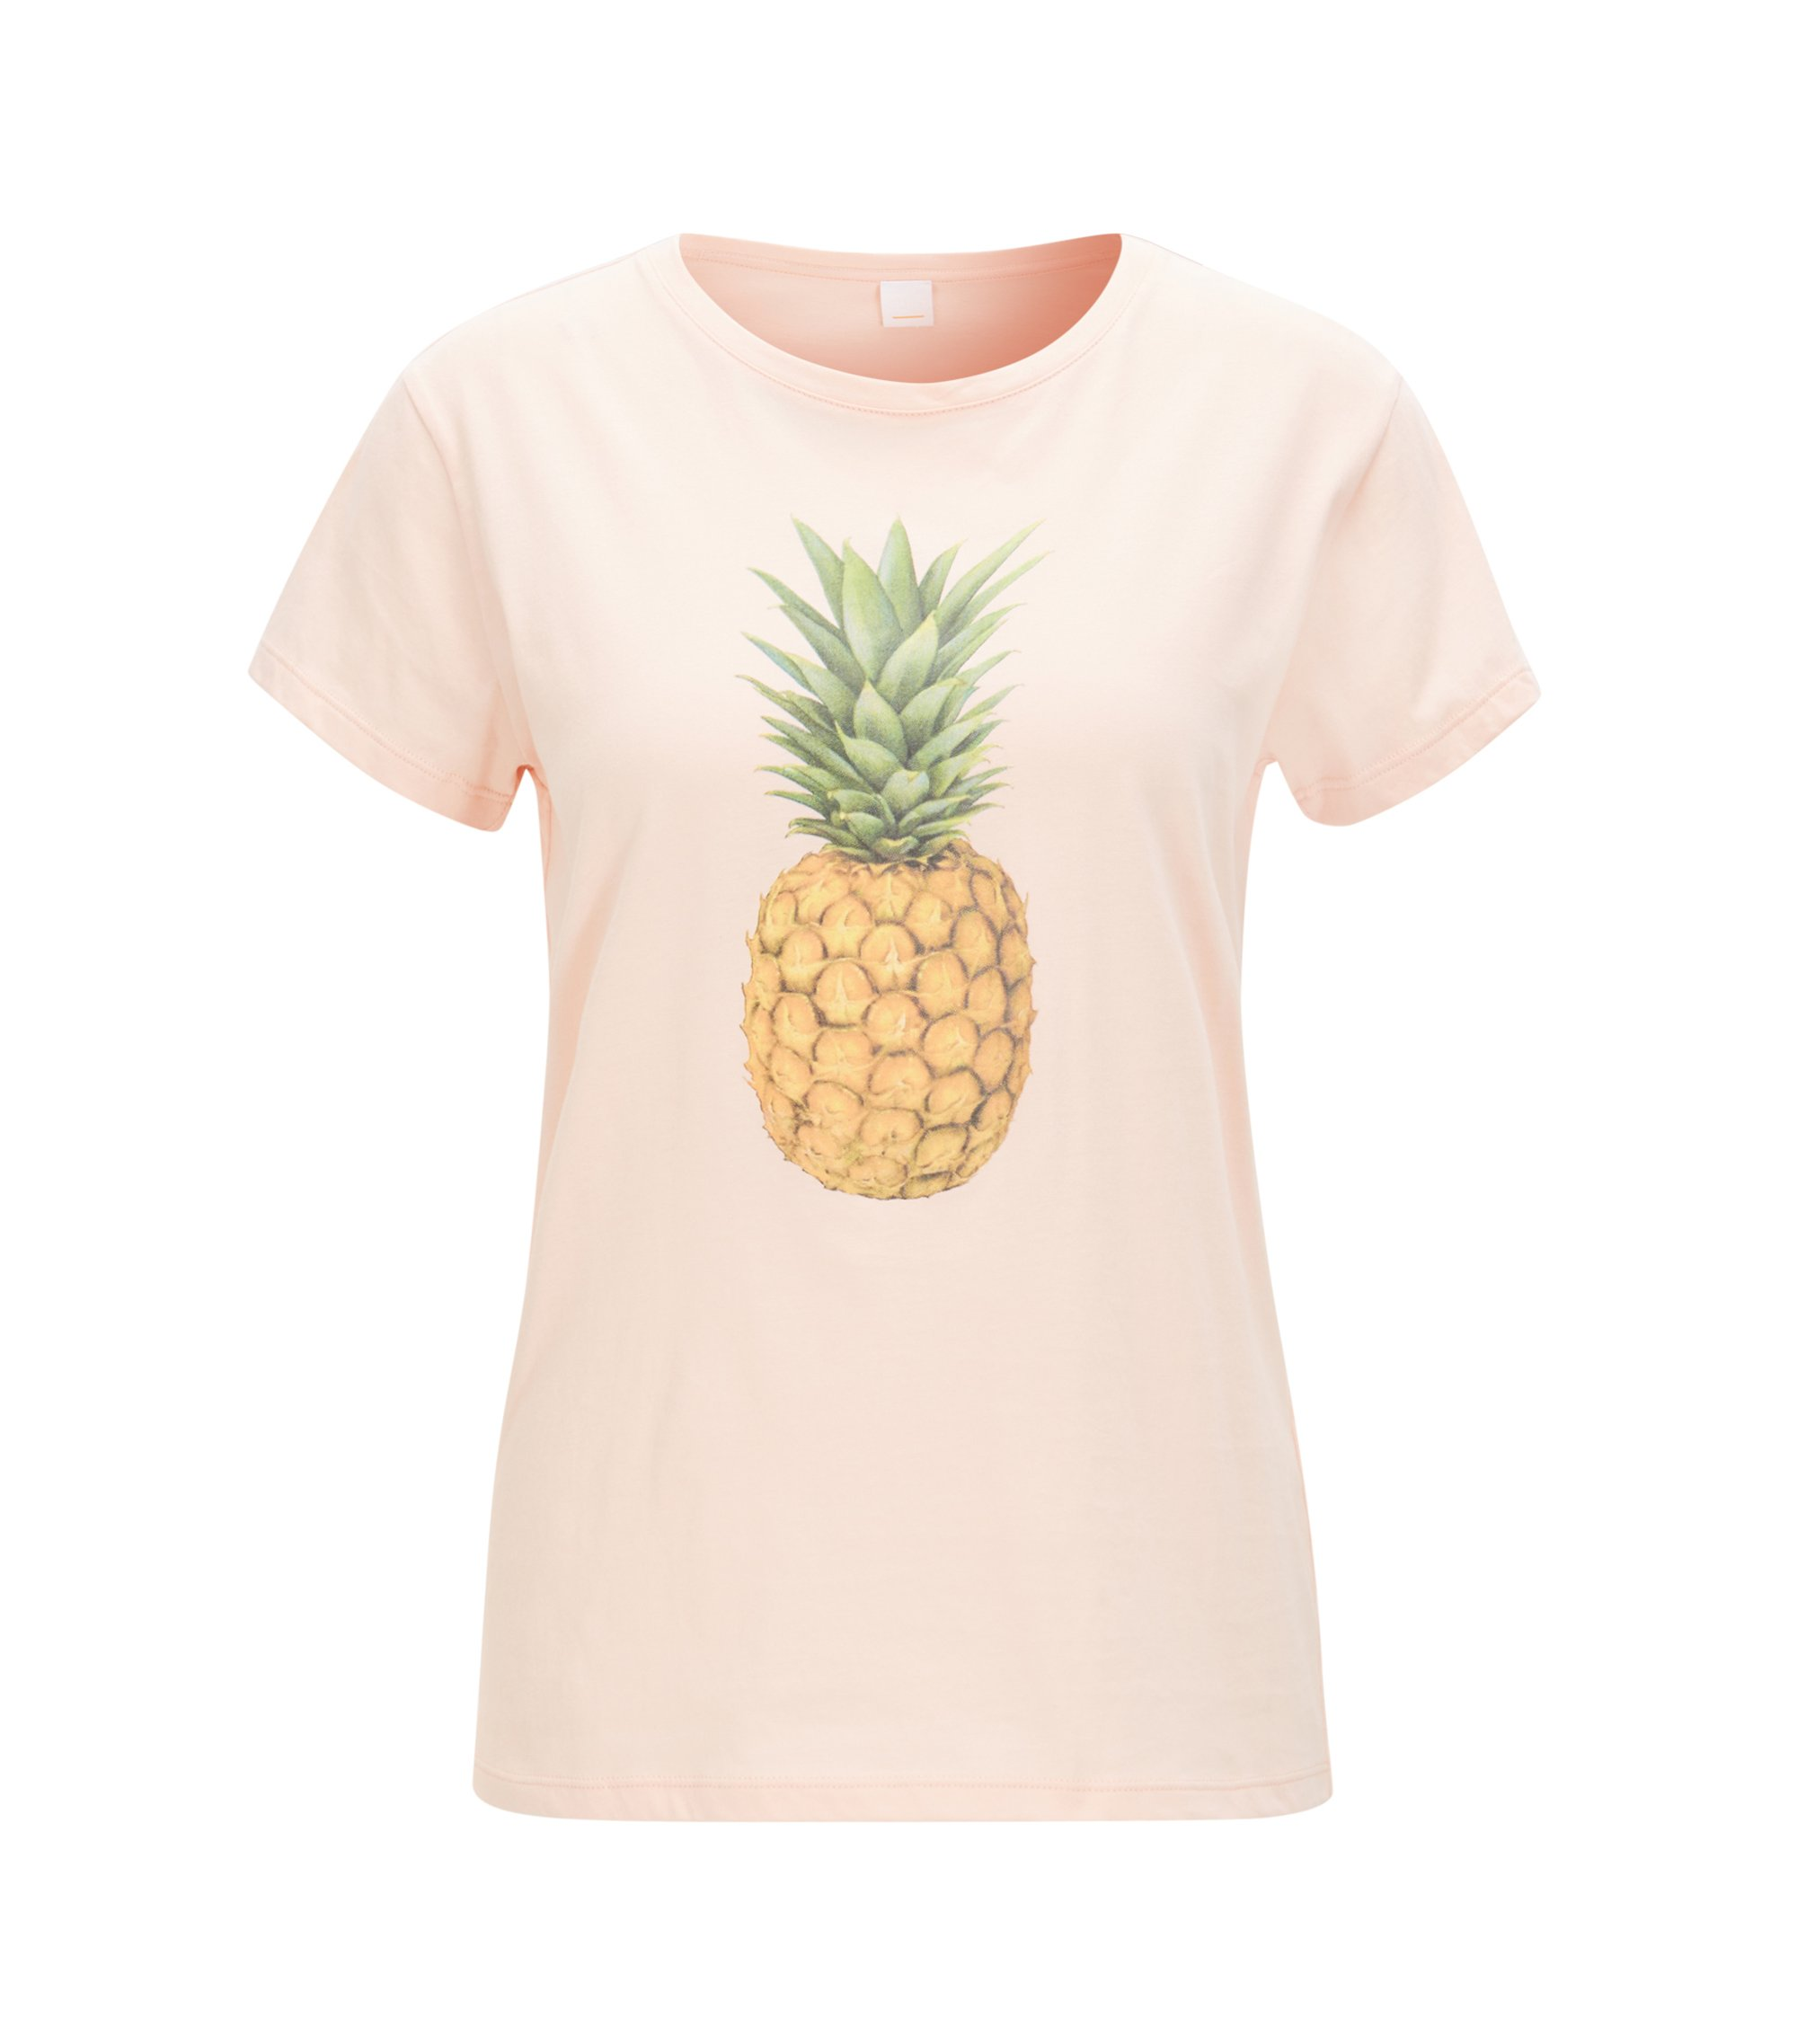 Pineapple-print cotton-jersey T-shirt, light pink